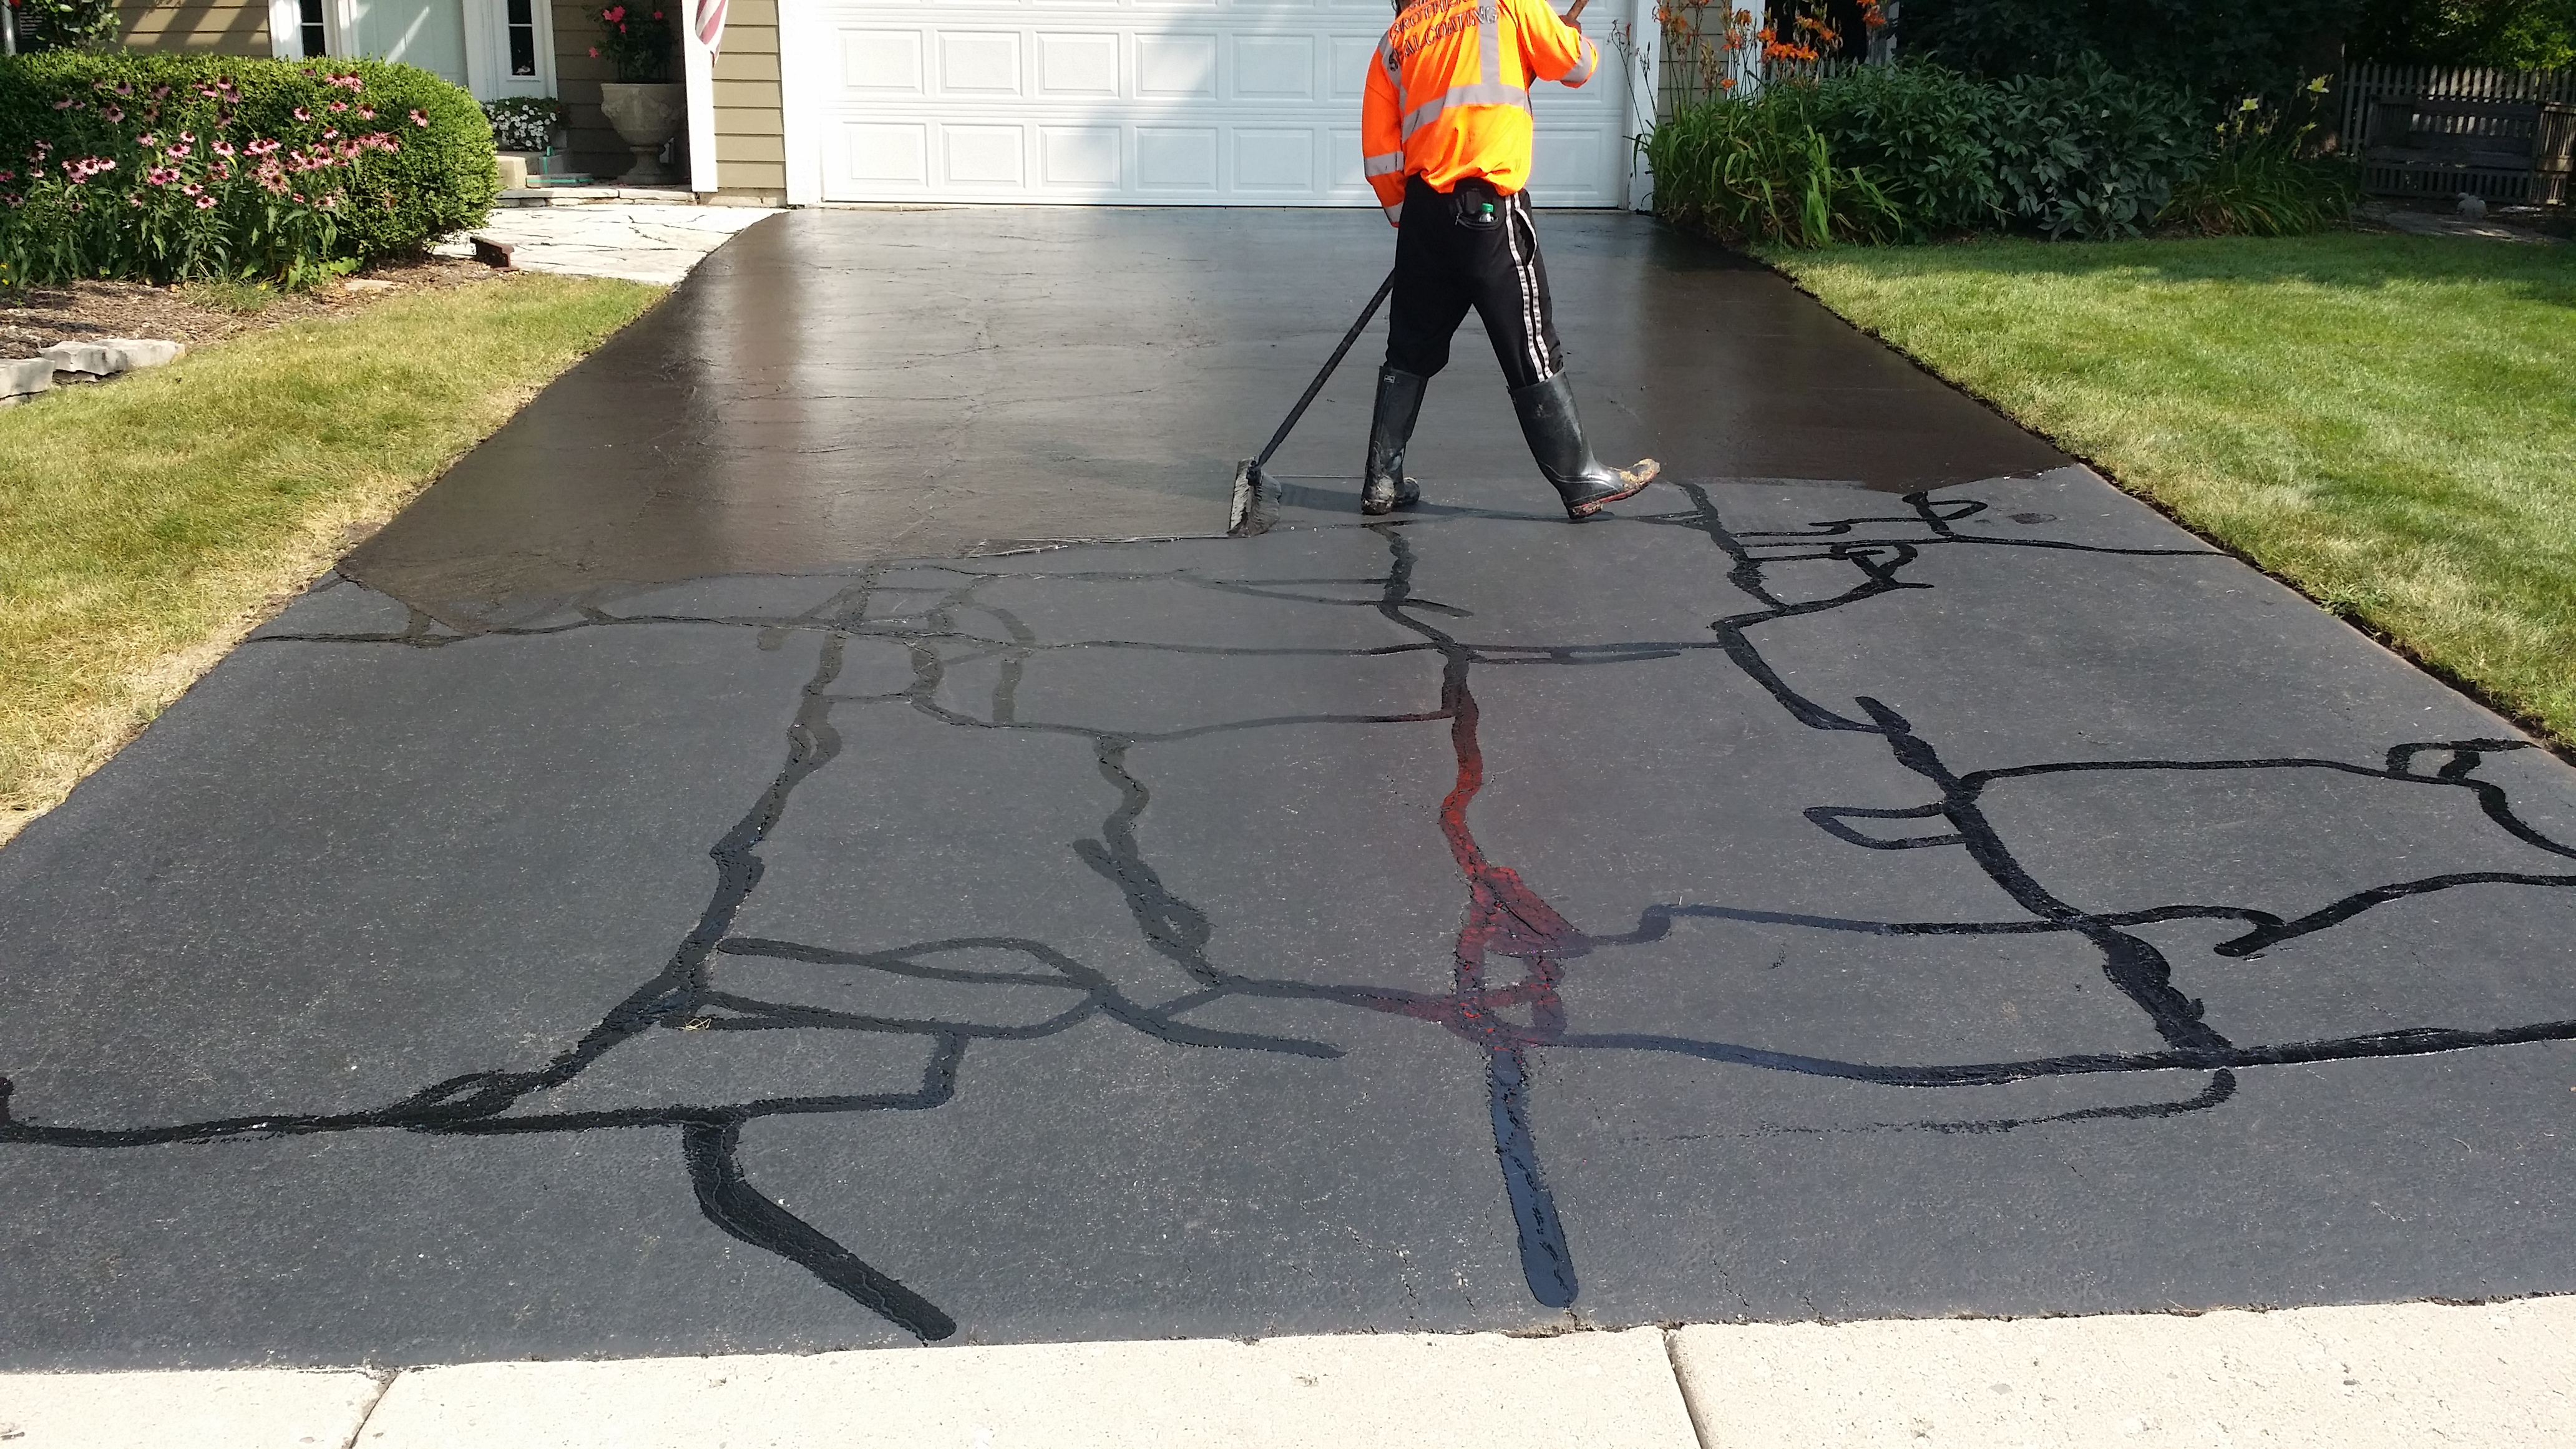 How To Fill The Cracks On Your Asphalt Driveway?